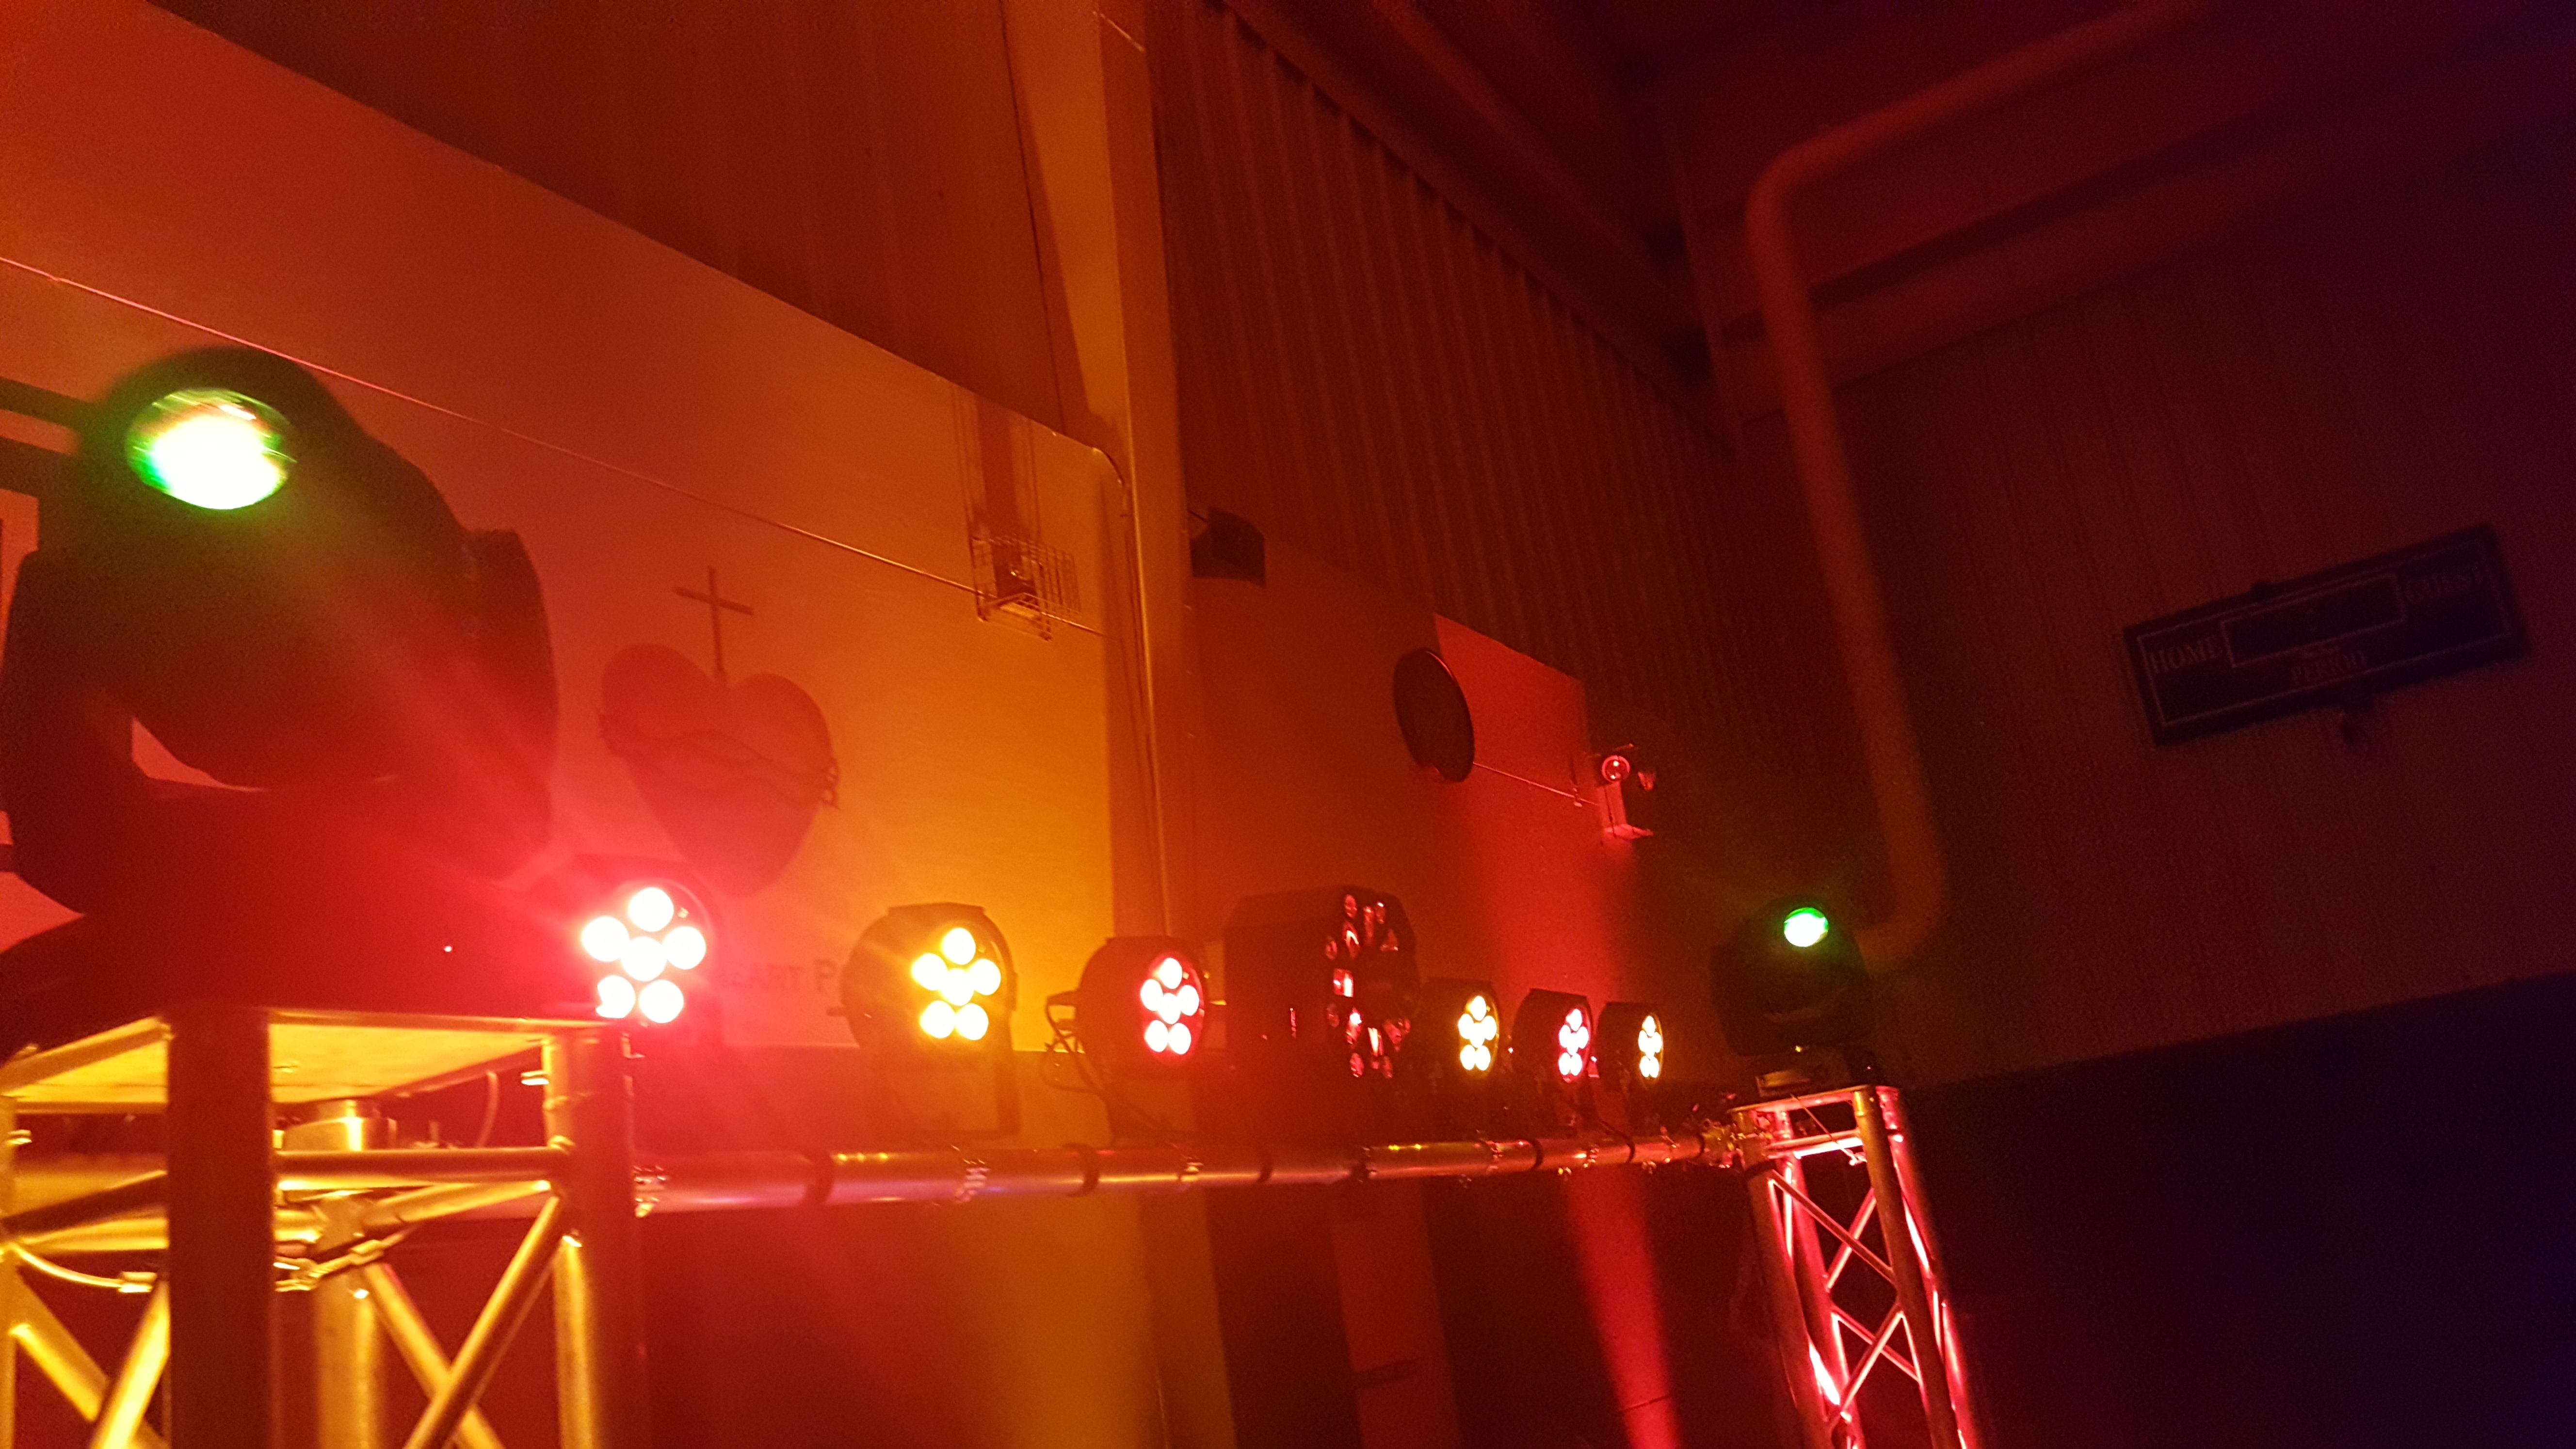 Moving Head Fixtures - Par Lights